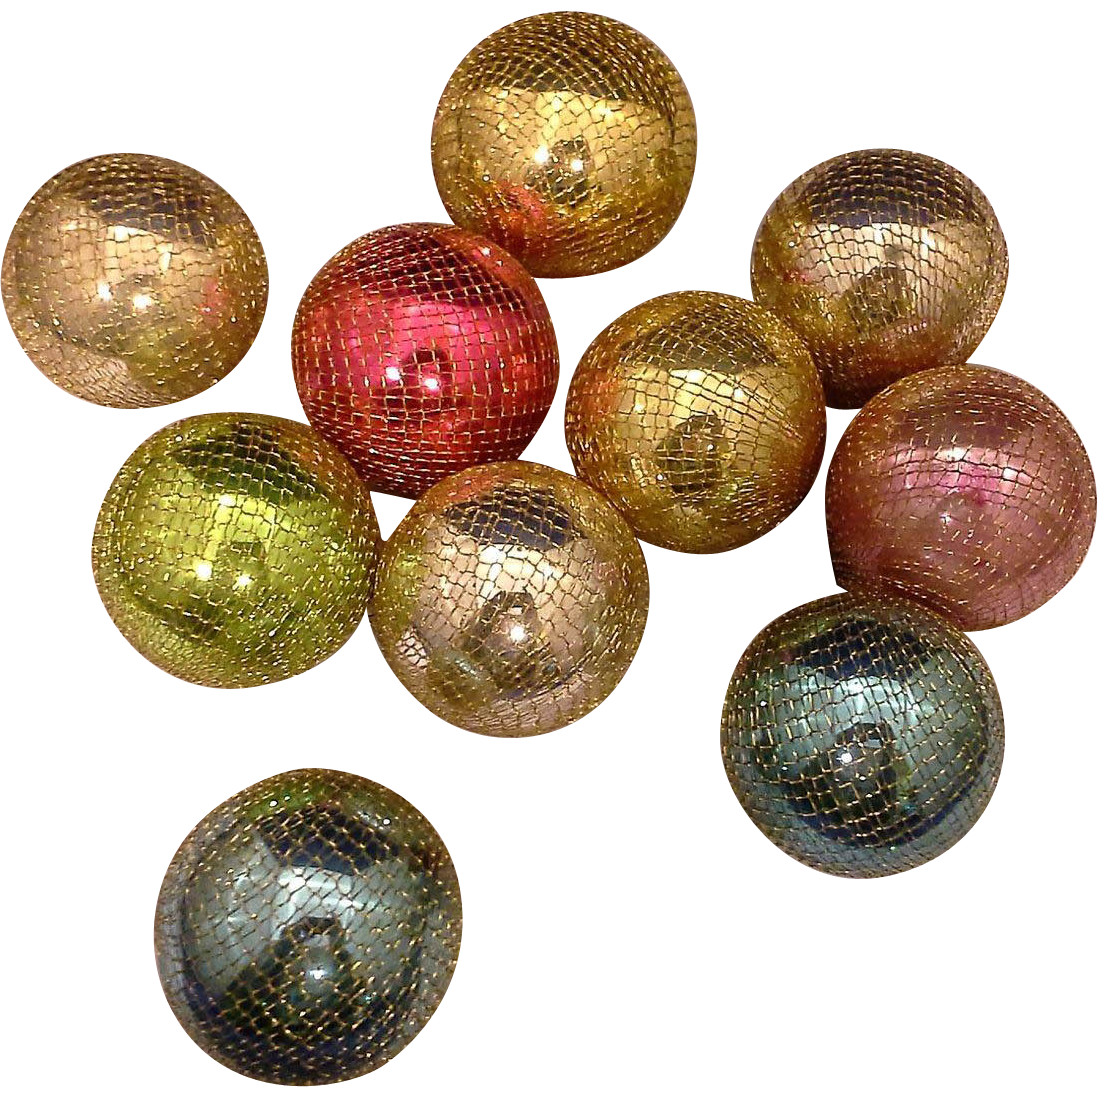 The Deco Haus Tagged Color Red: Shiny Brite Japan Gold Mesh Covered Christmas Ball